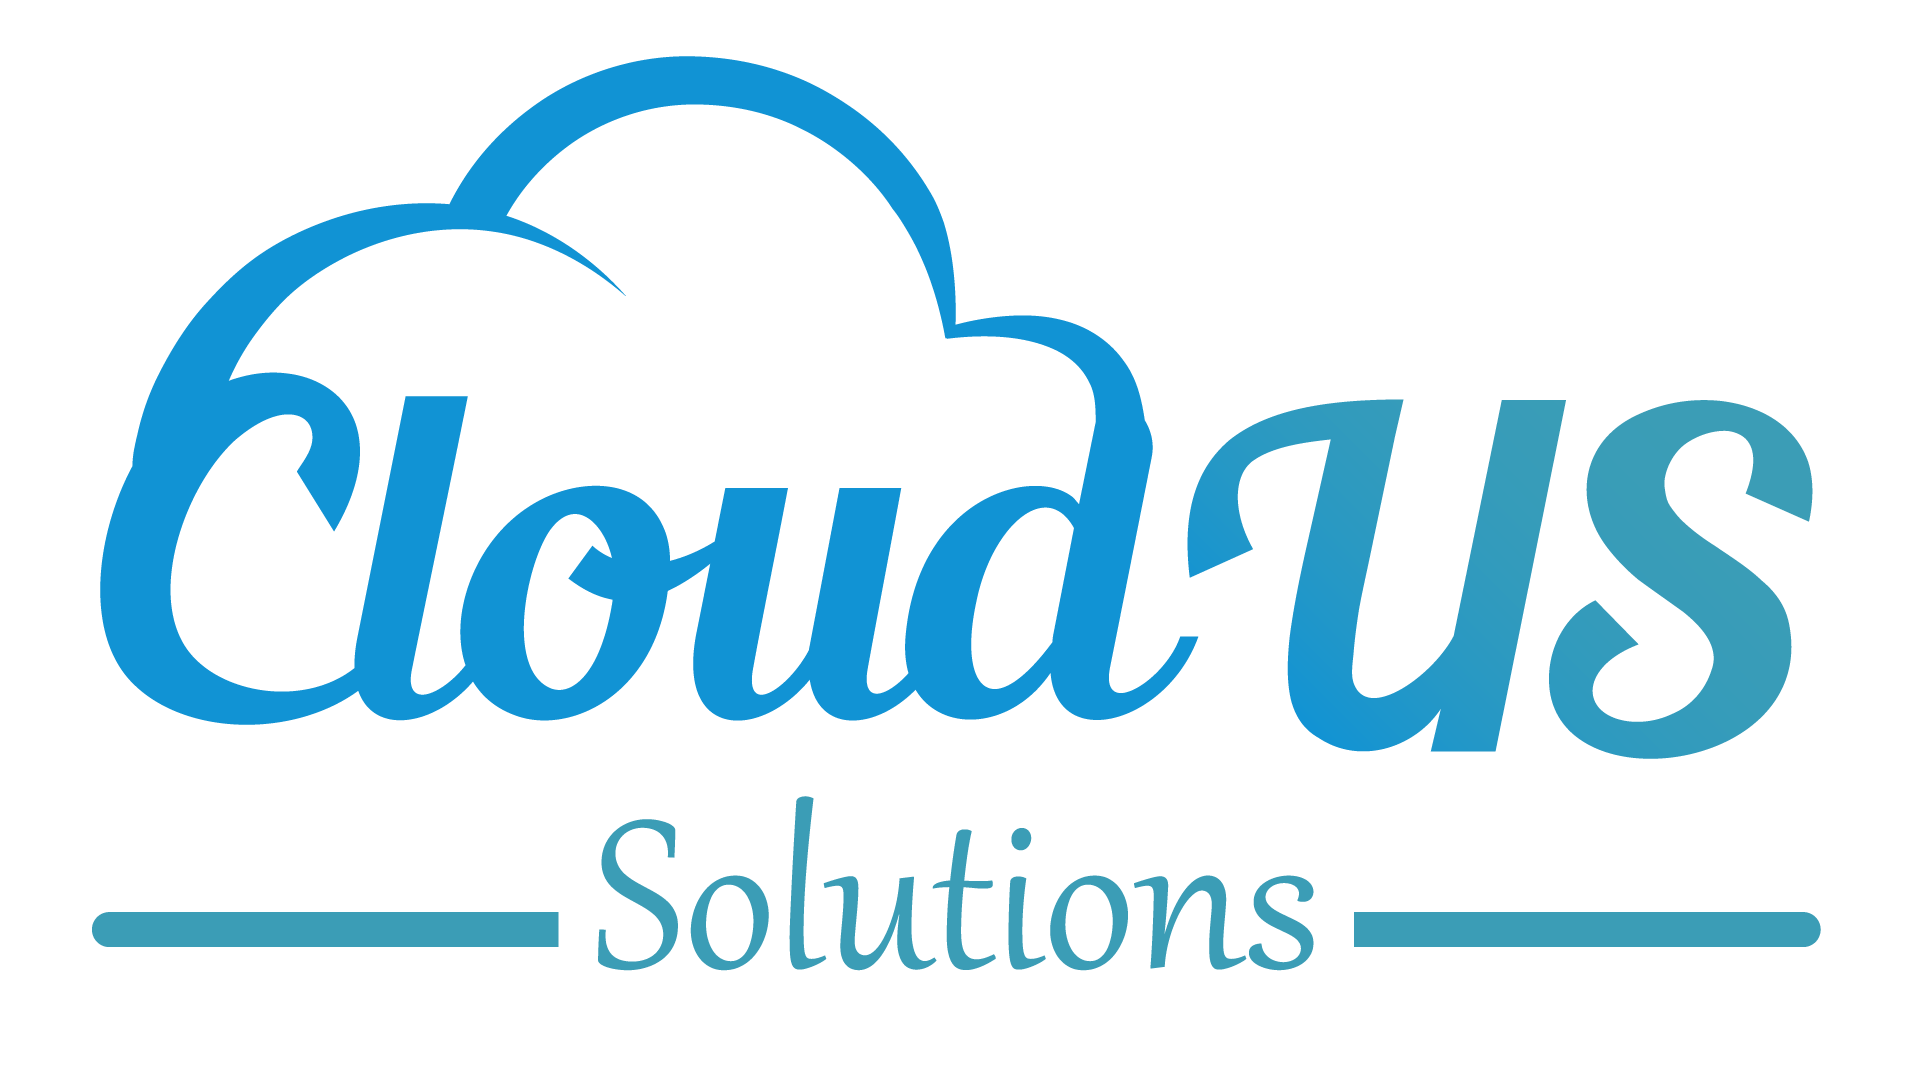 CloudUS Solutions